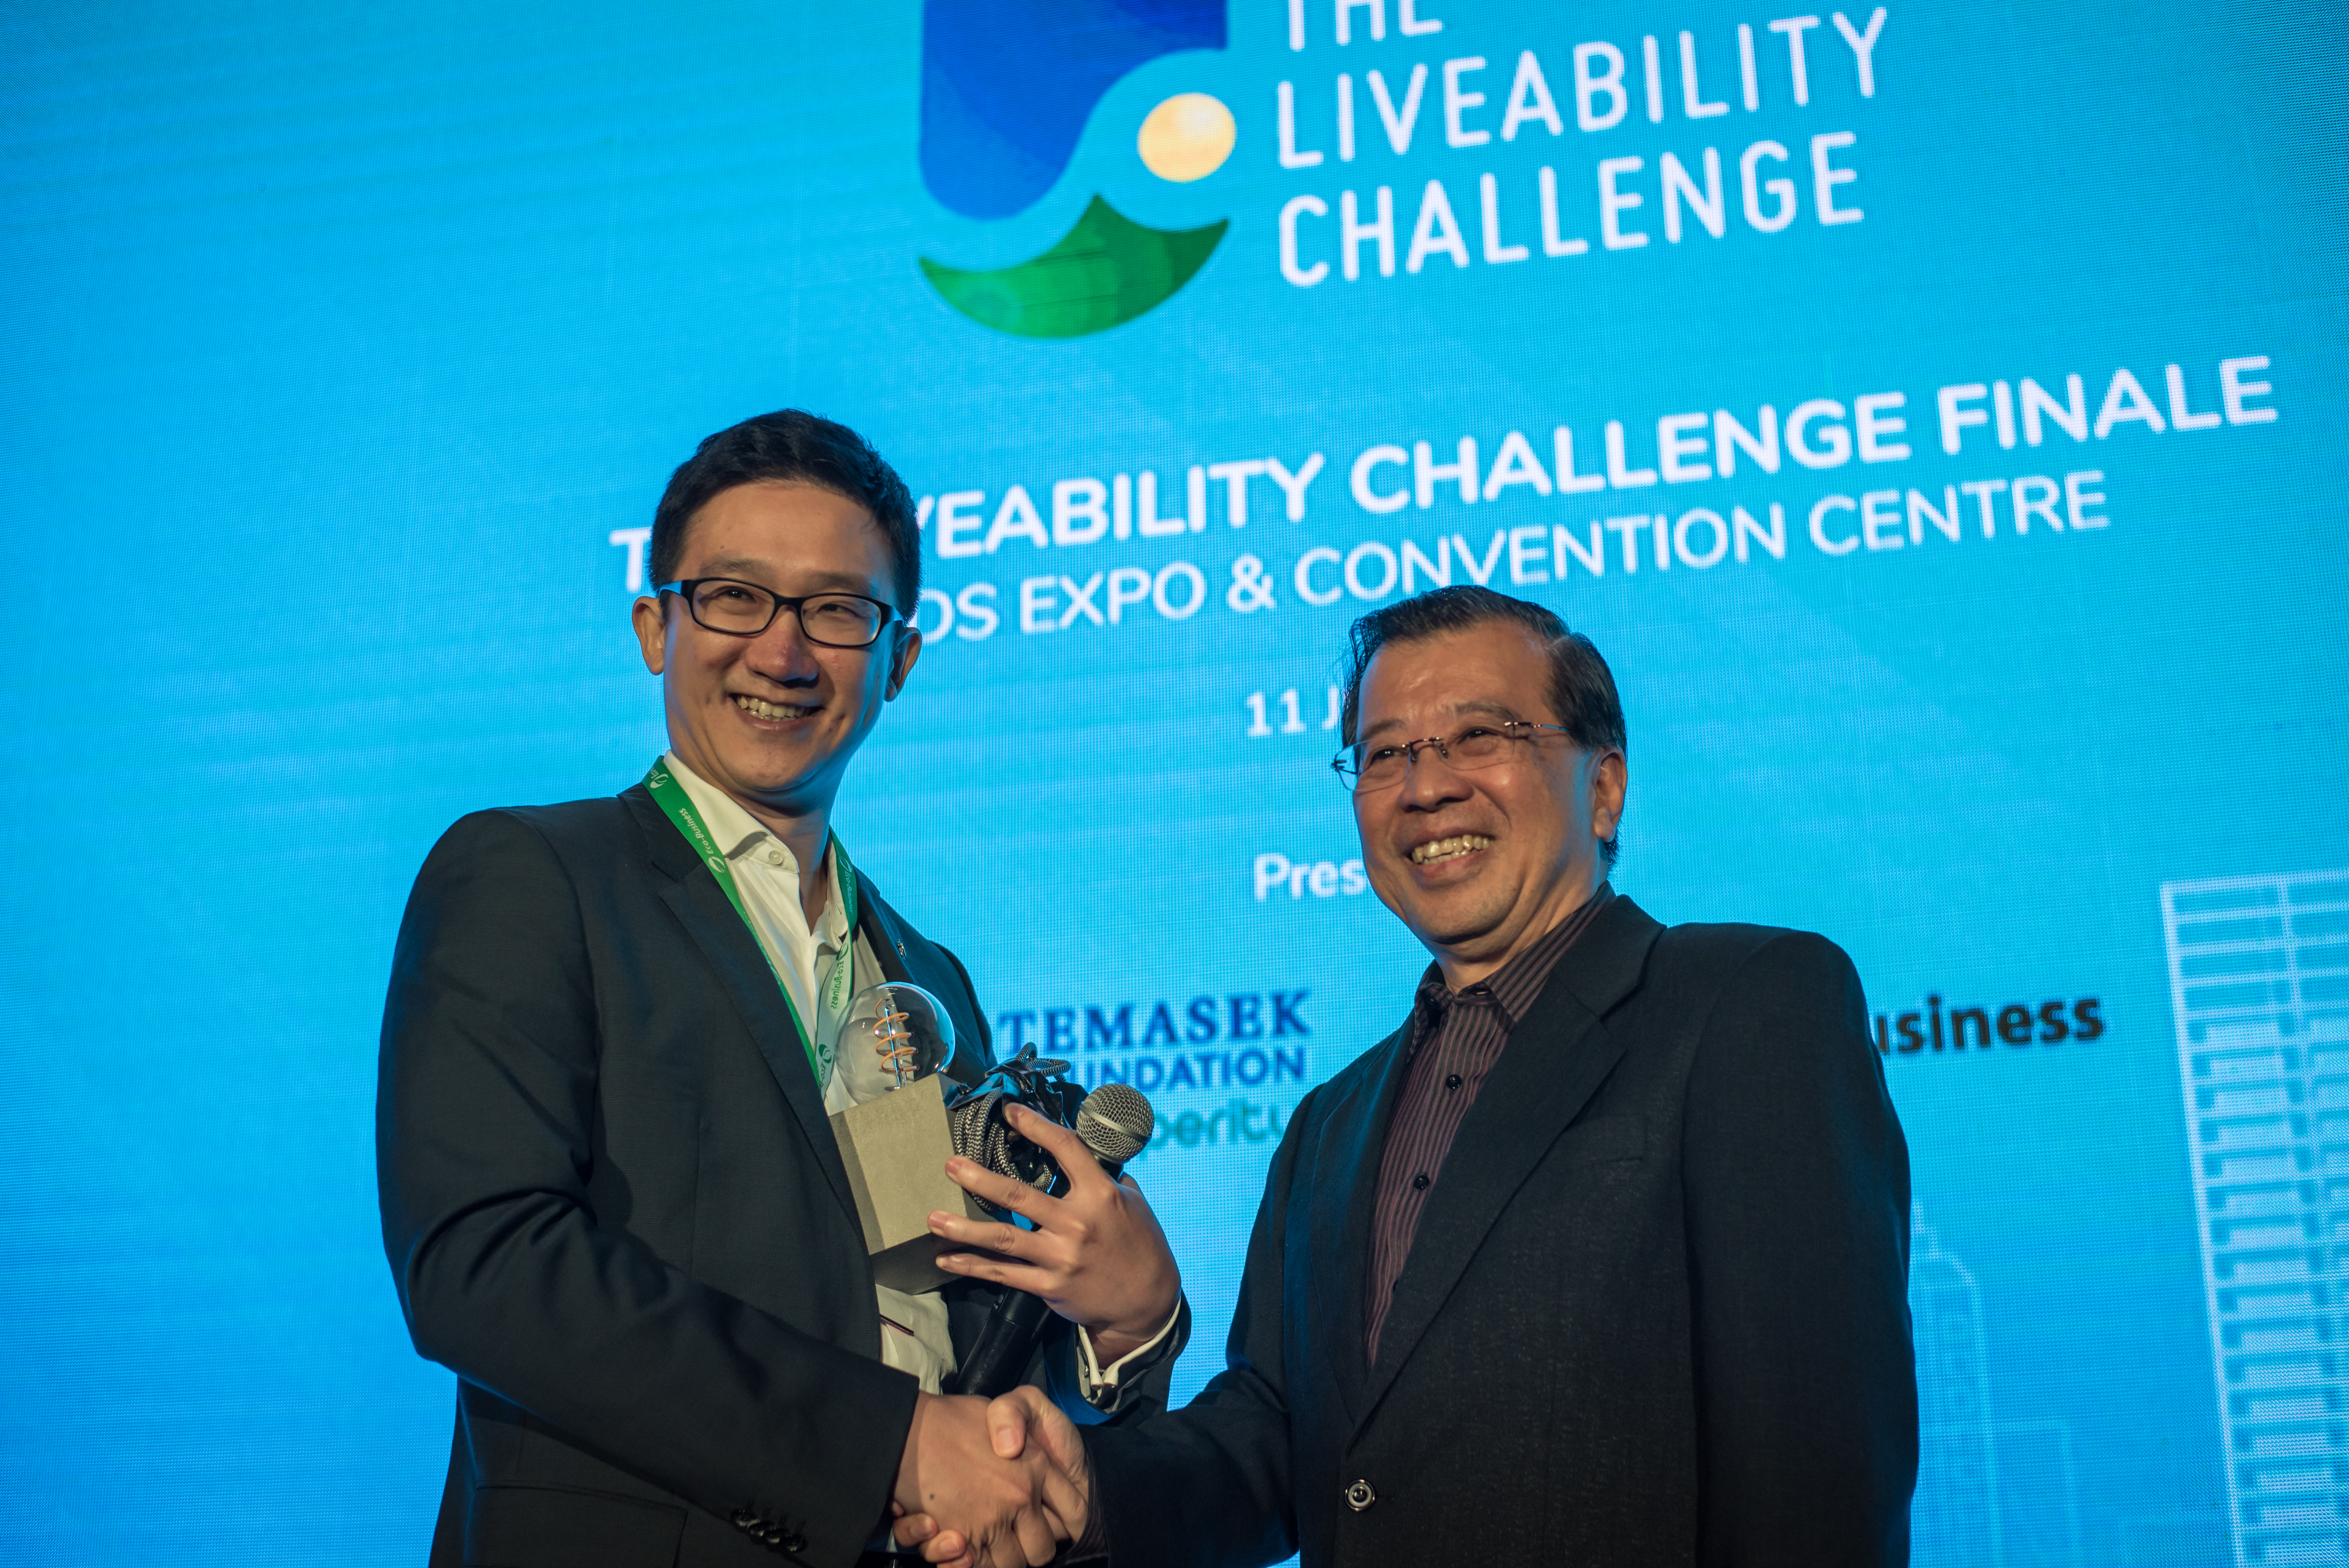 Photo 2 - Mr Zhaotan Xiao receiving The Liveability Challenge 2018 award from Mr Lim Hock Chuan